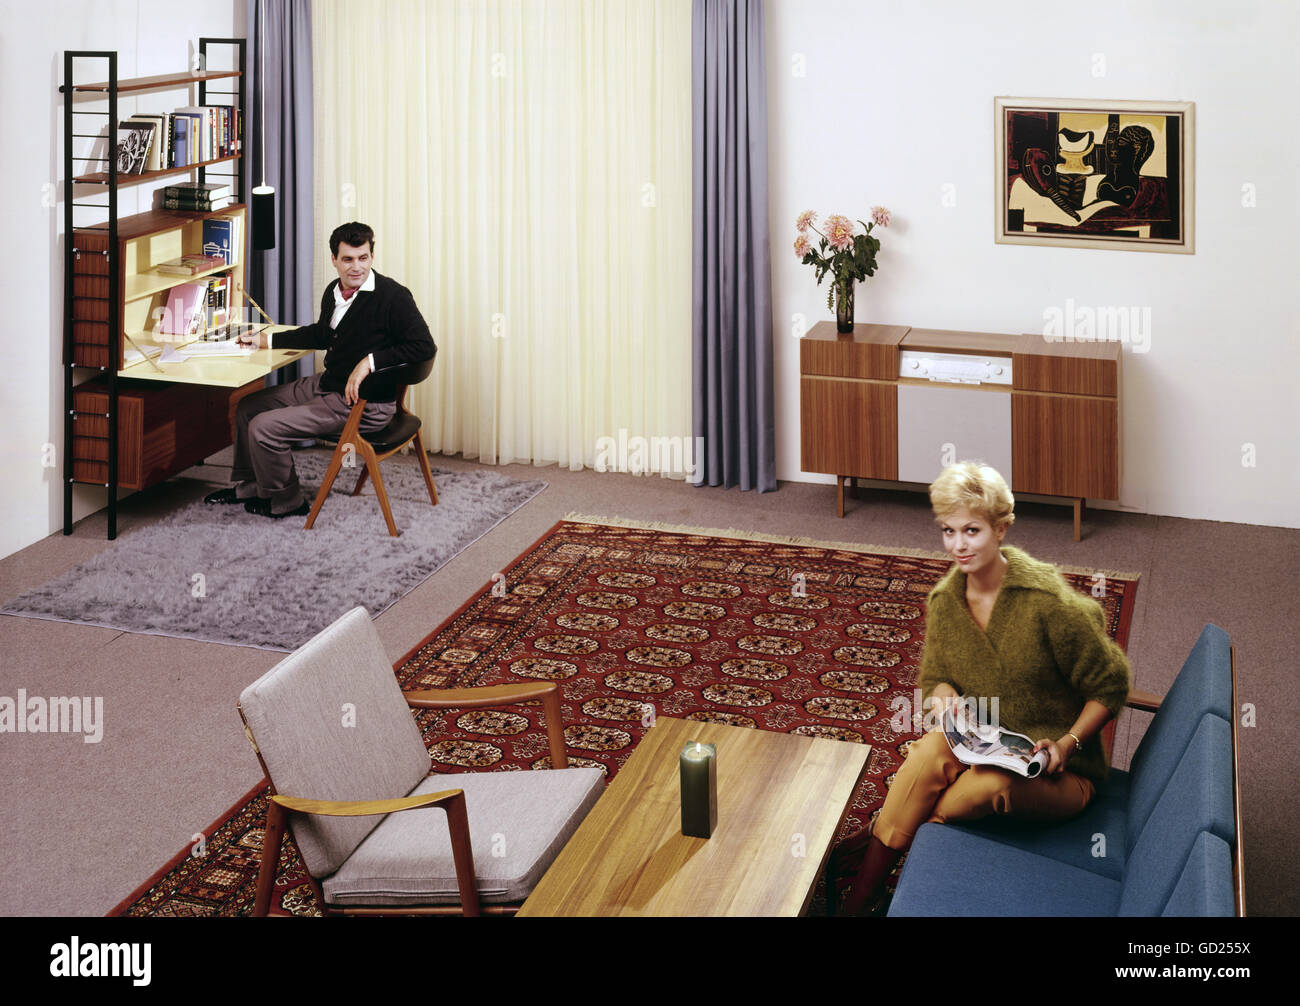 furnishings, living-room, circa 1960, Additional-Rights-Clearences-NA - Stock Image